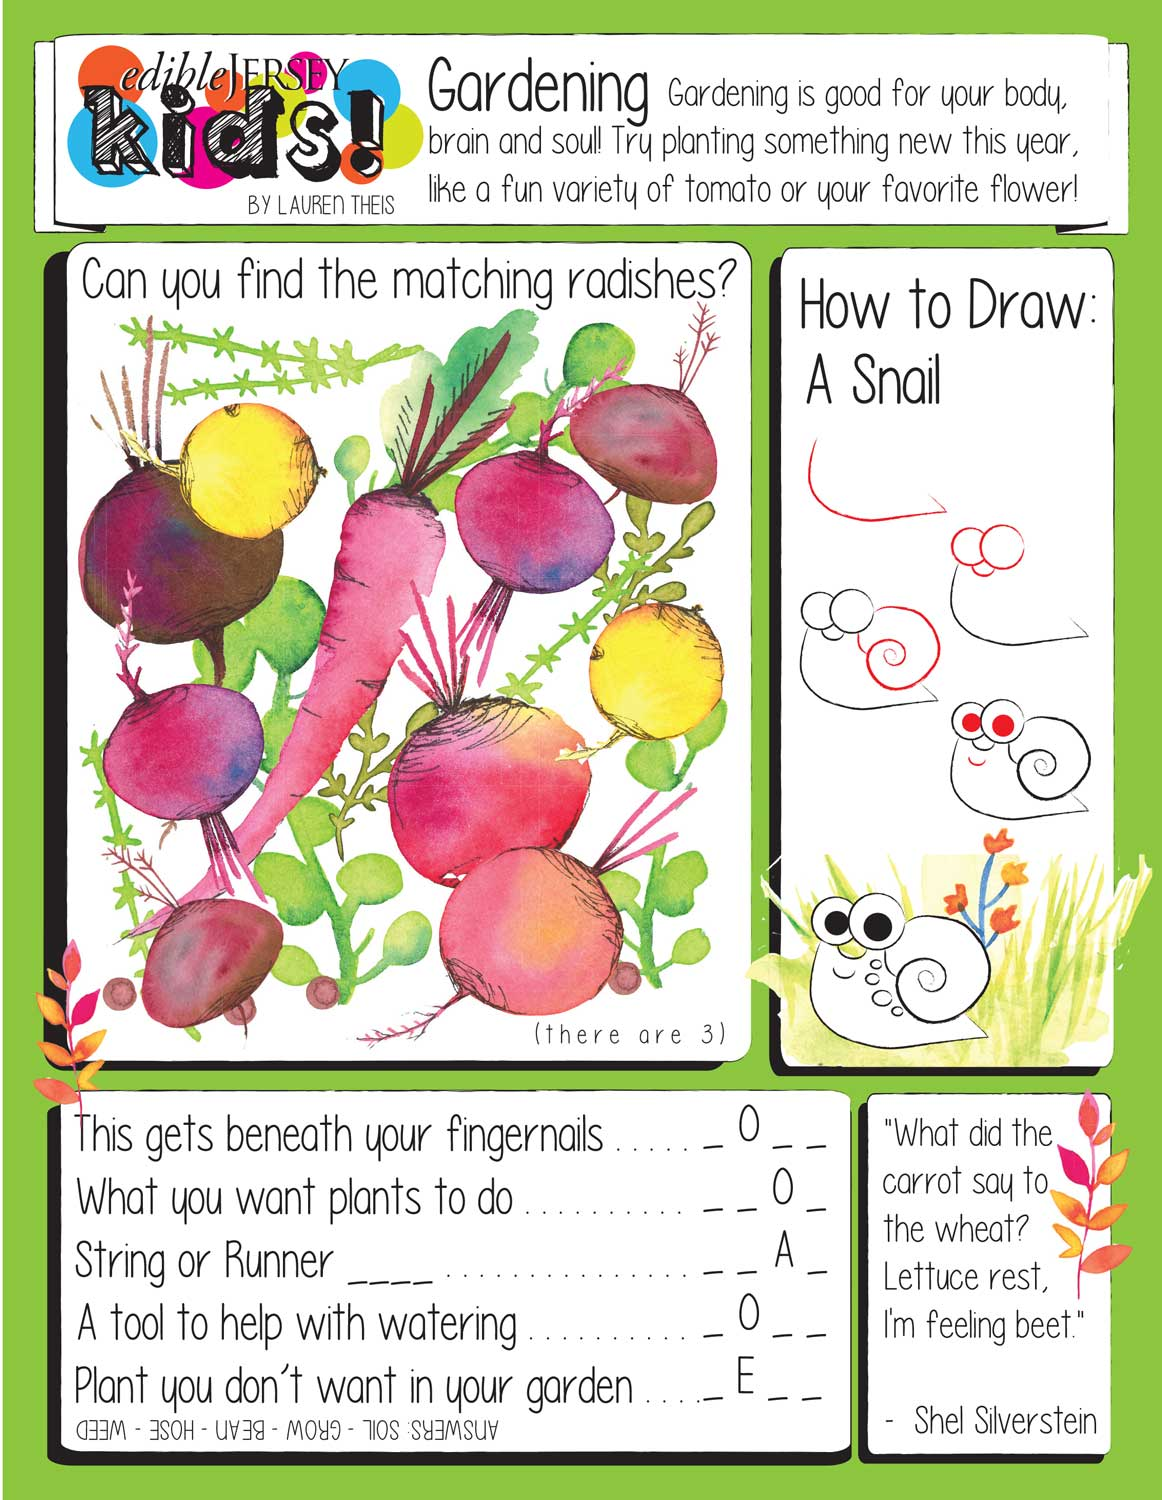 A Gardening Activity Sheet For Kids